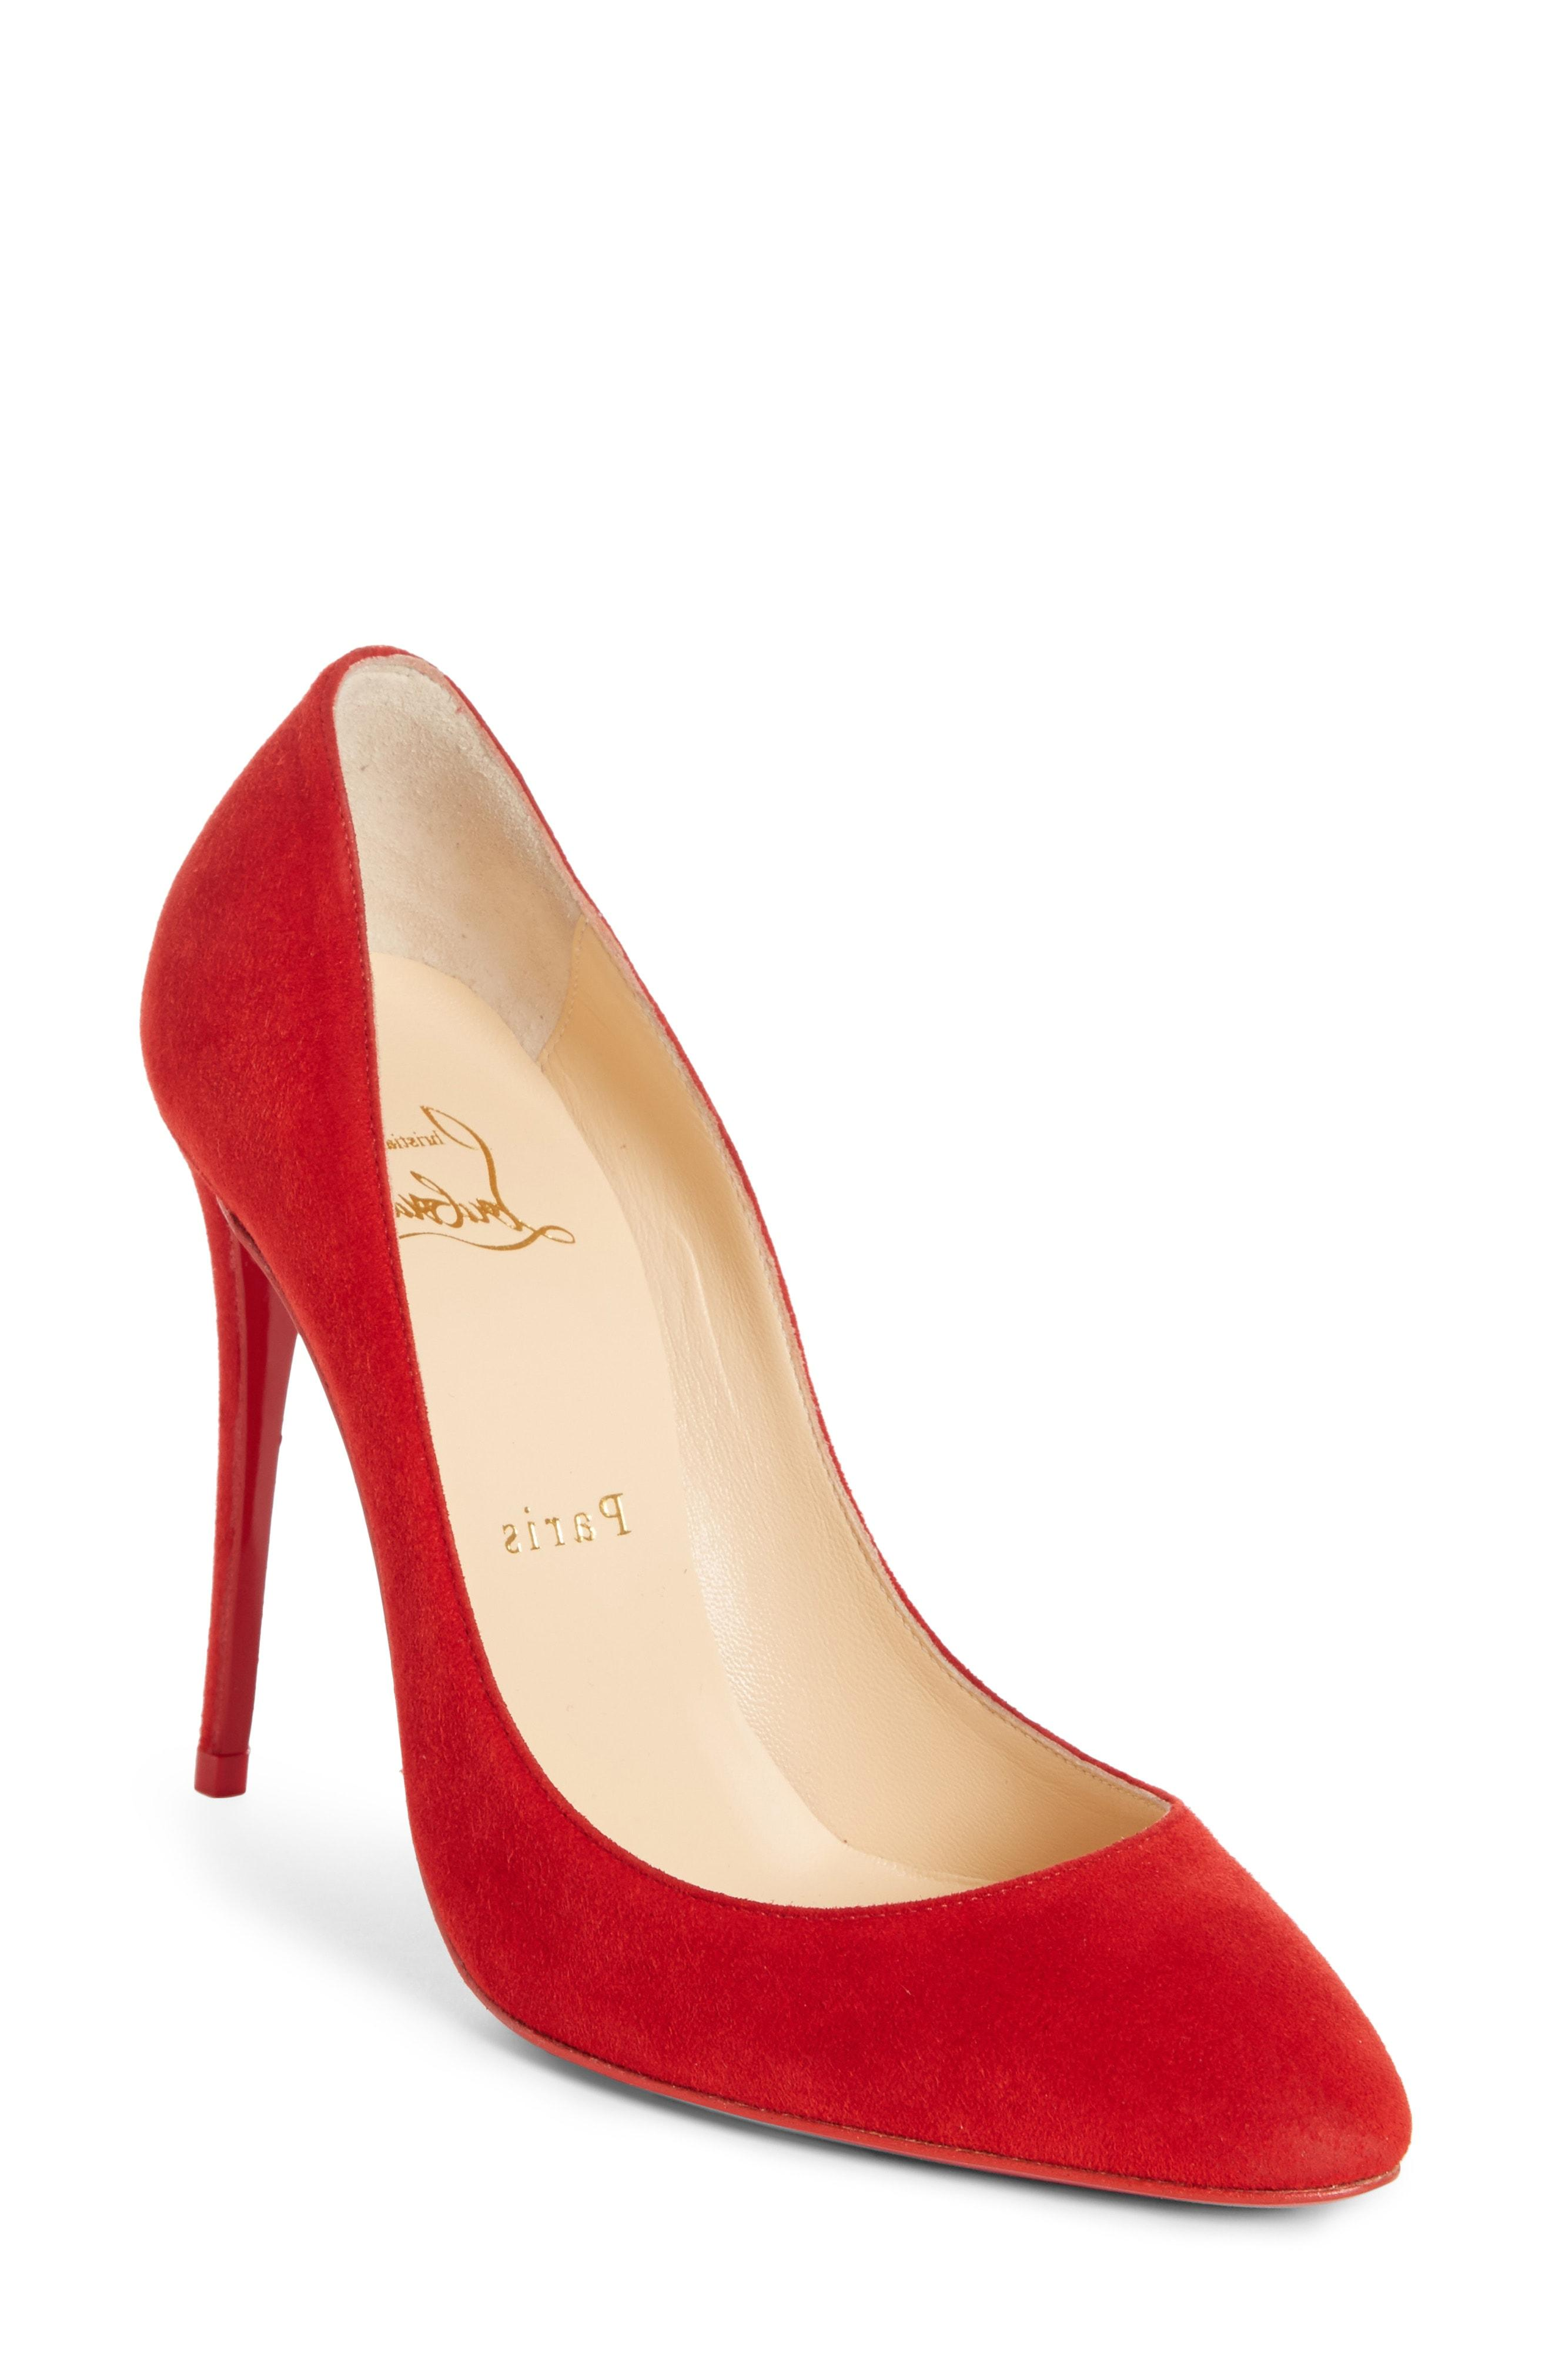 a539688a2293 Christian Louboutin Eloise 100Mm Suede Red Sole Pump